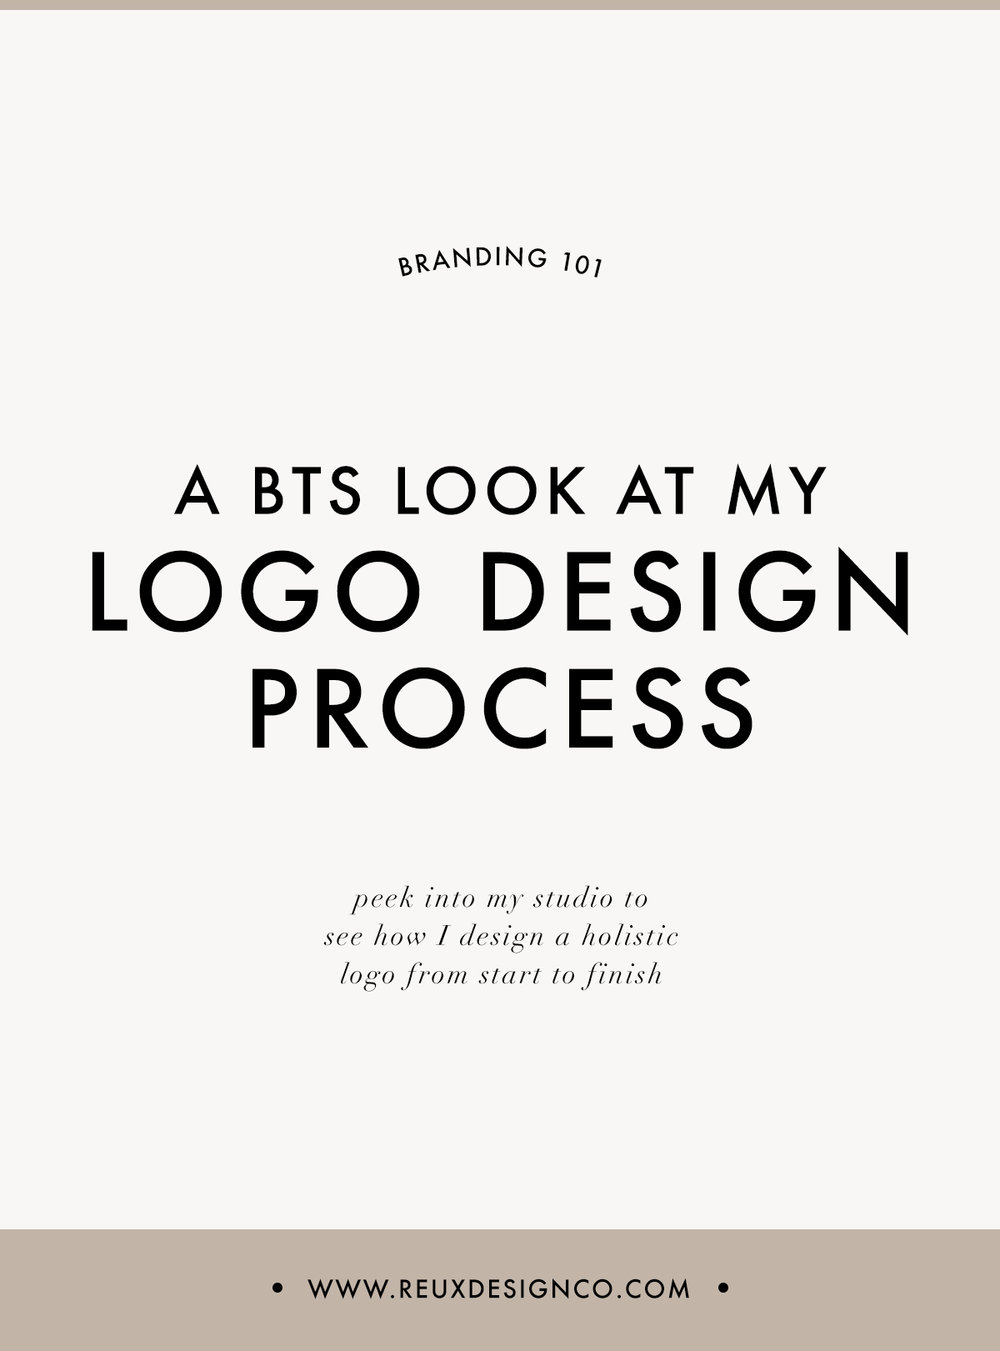 My Full Logo Design Process | See How I Design a Holistic Logo | Reux Design Co.